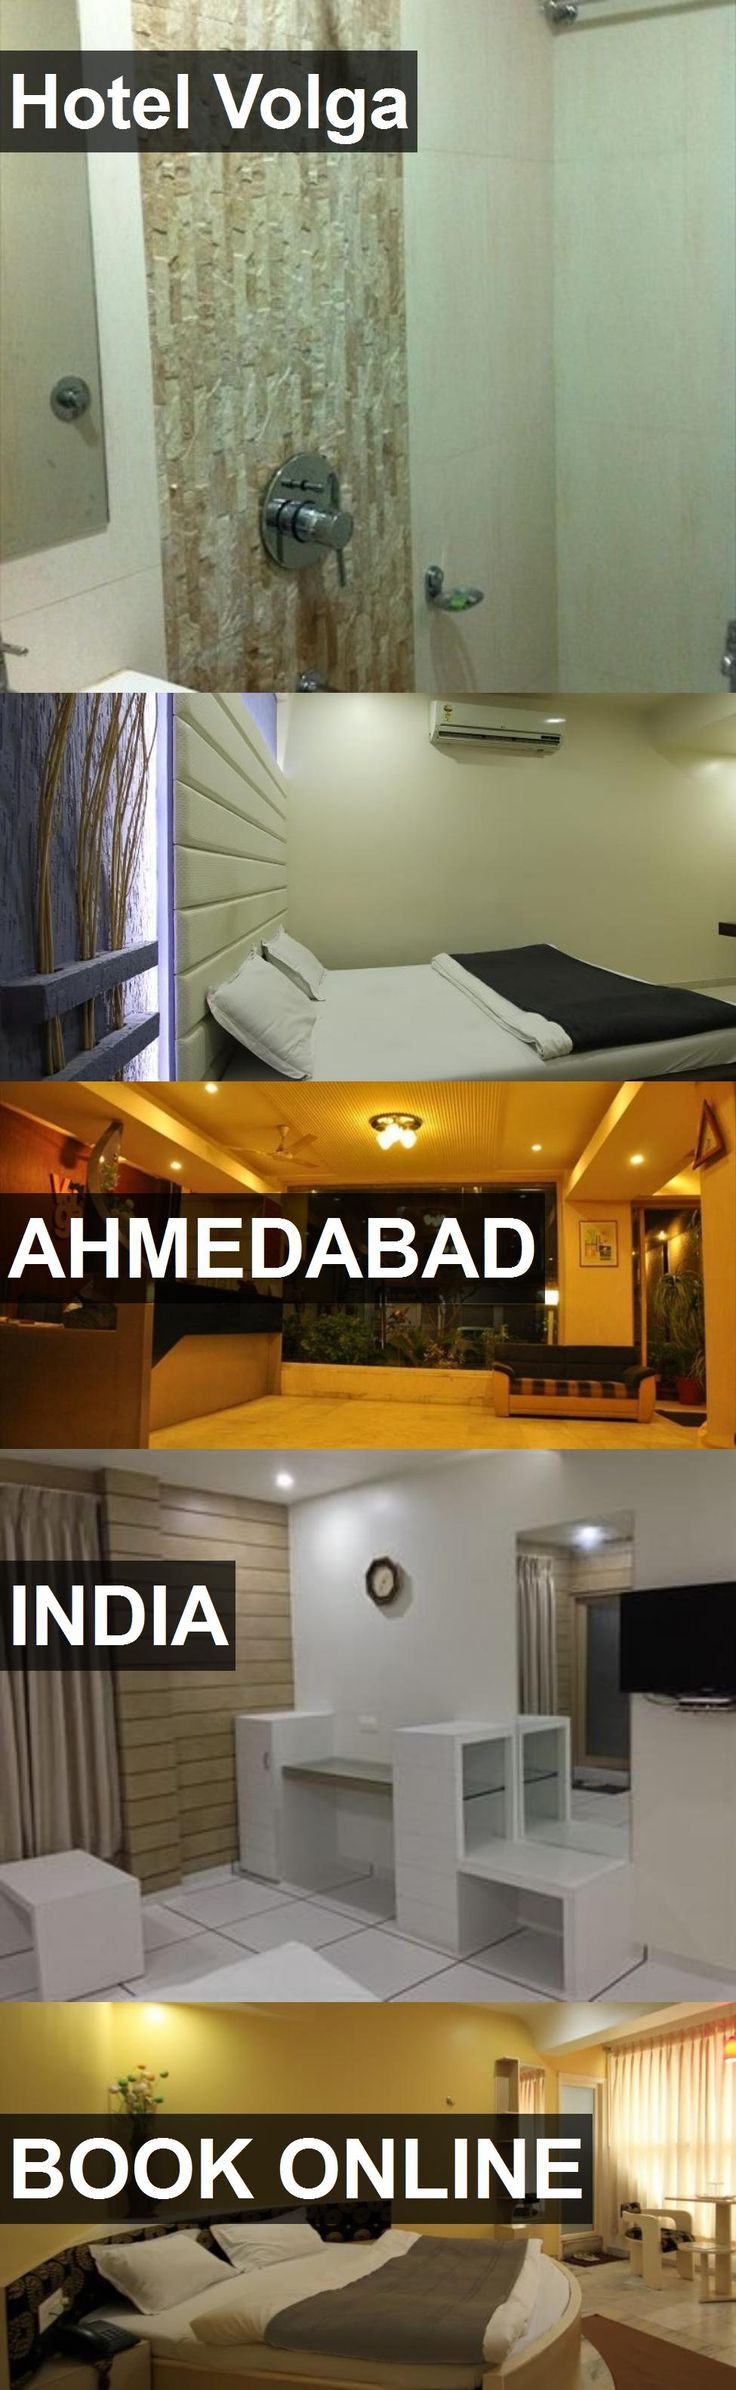 Hotel Hotel Volga in Ahmedabad, India. For more information, photos, reviews and best prices please follow the link. #India #Ahmedabad #HotelVolga #hotel #travel #vacation